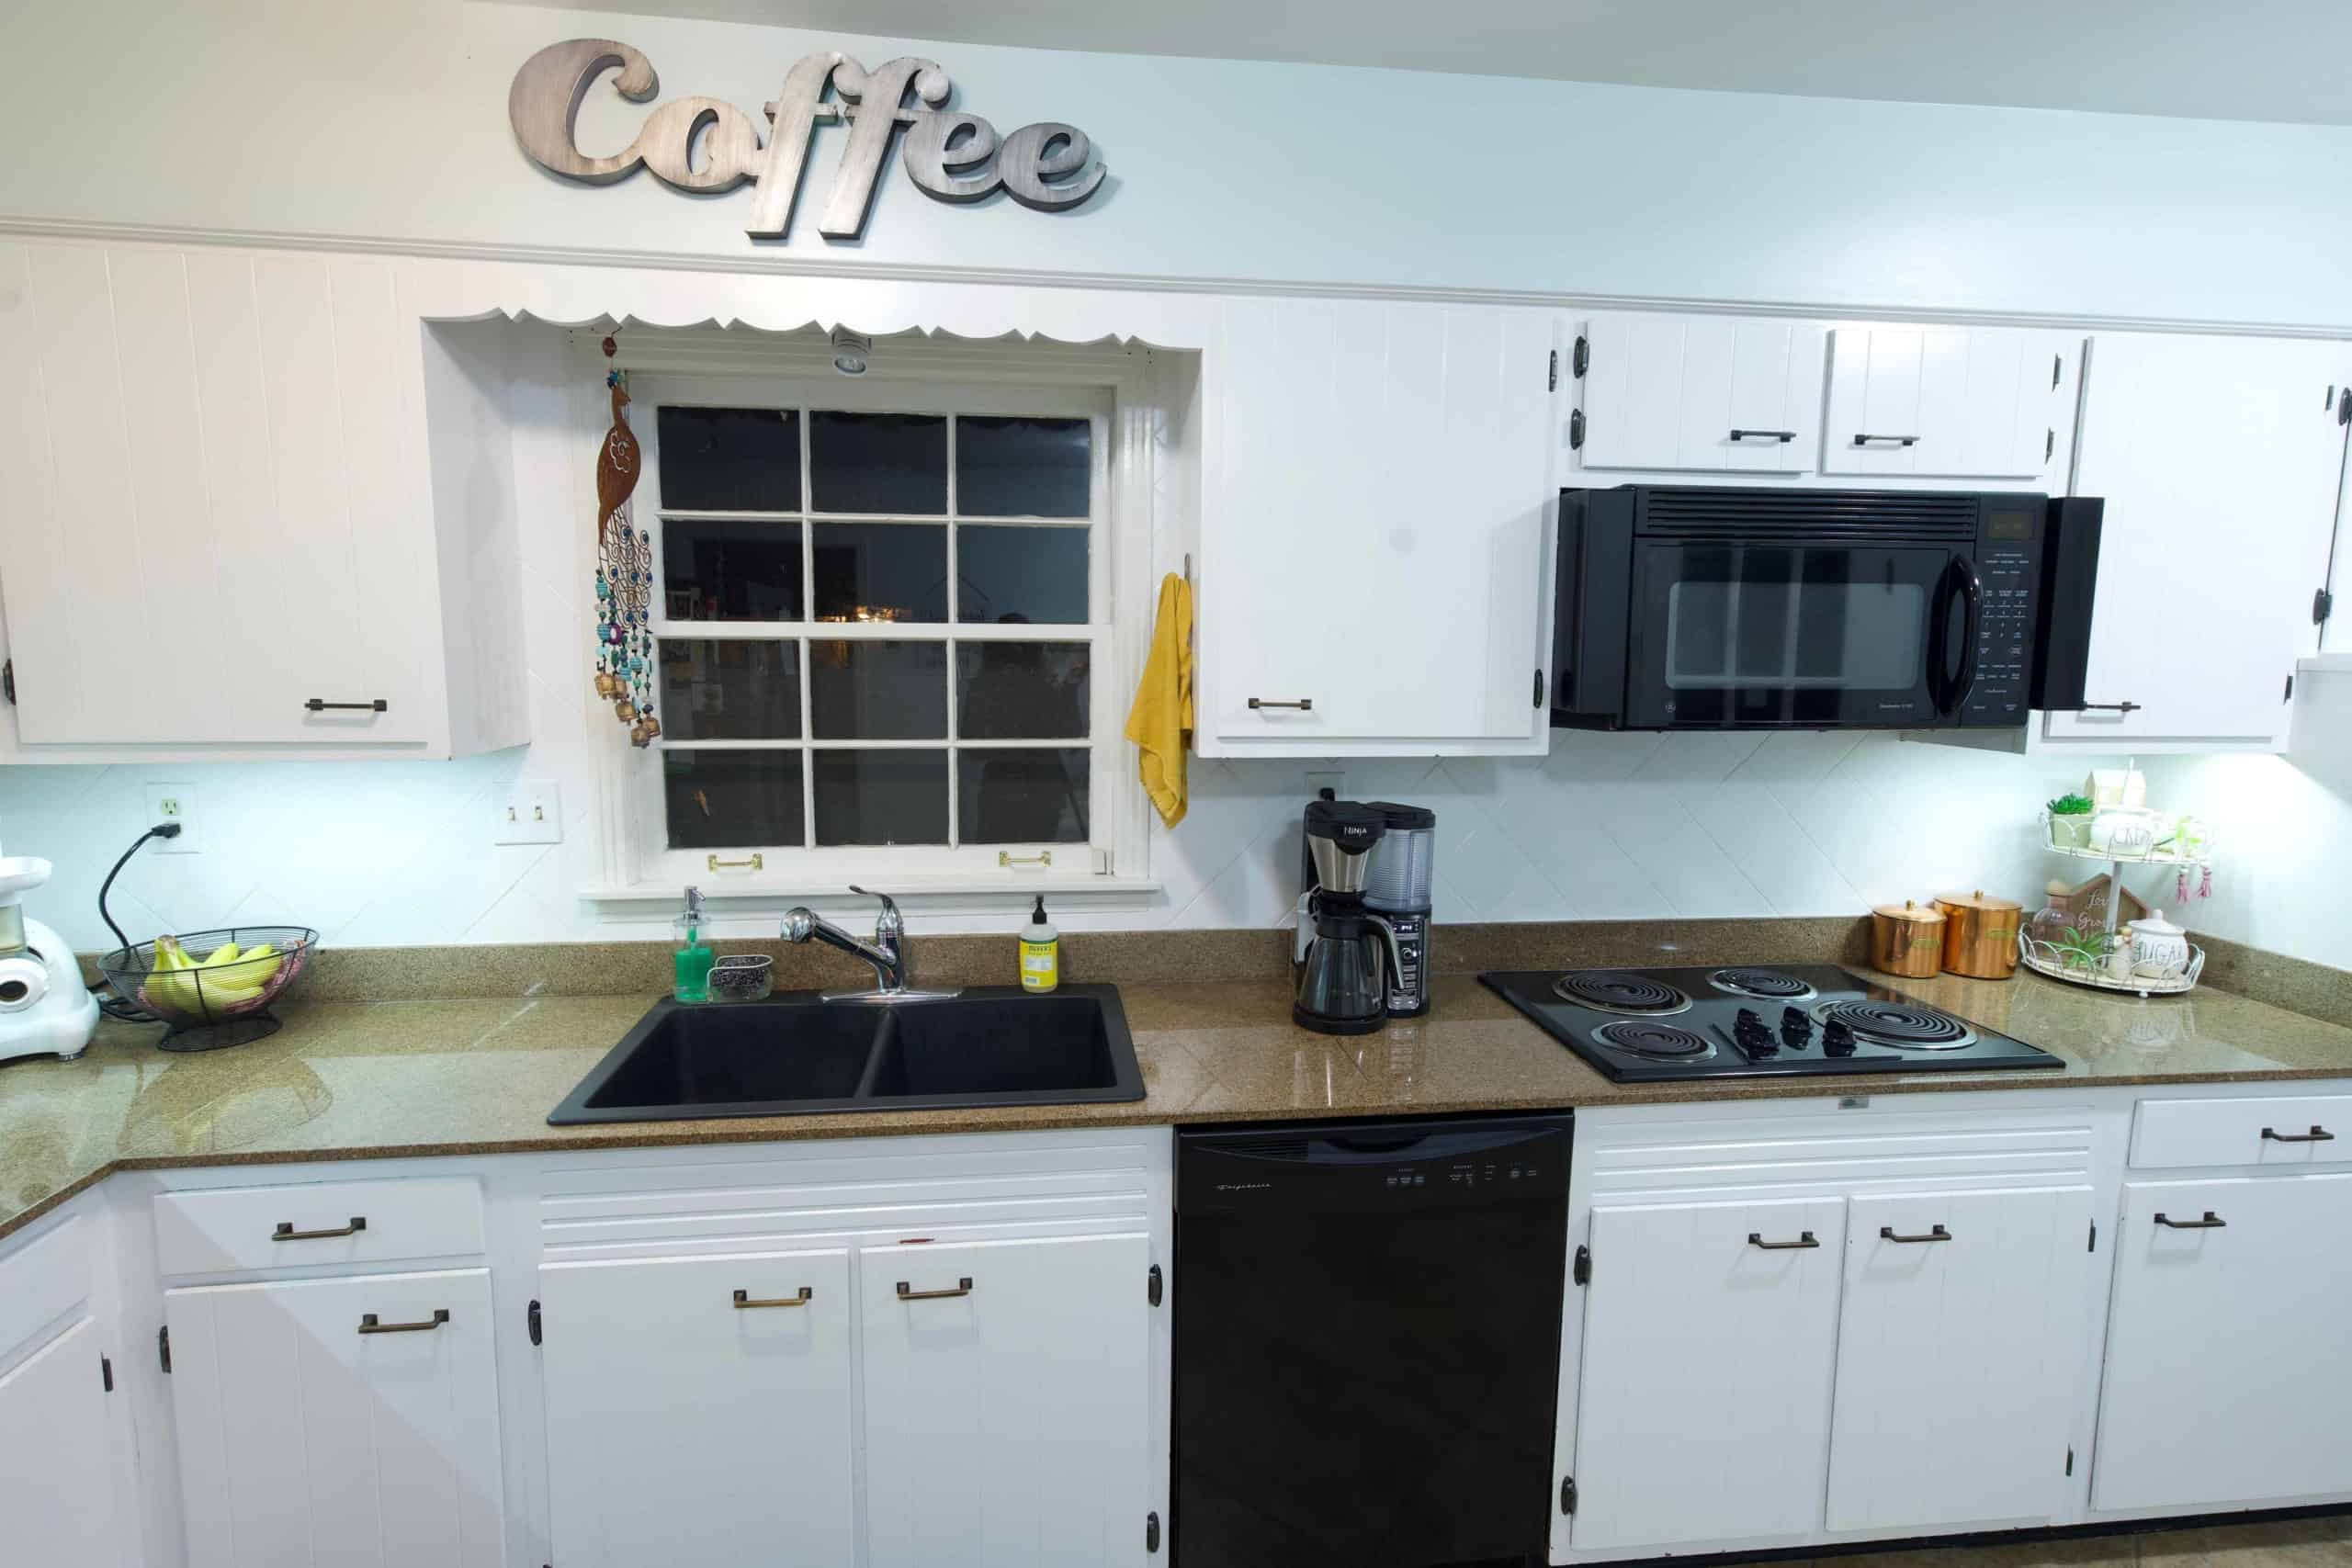 This DIY under cabinet lighting is so simple and will only take you 5 minutes to install! Extra light has never been so easy!